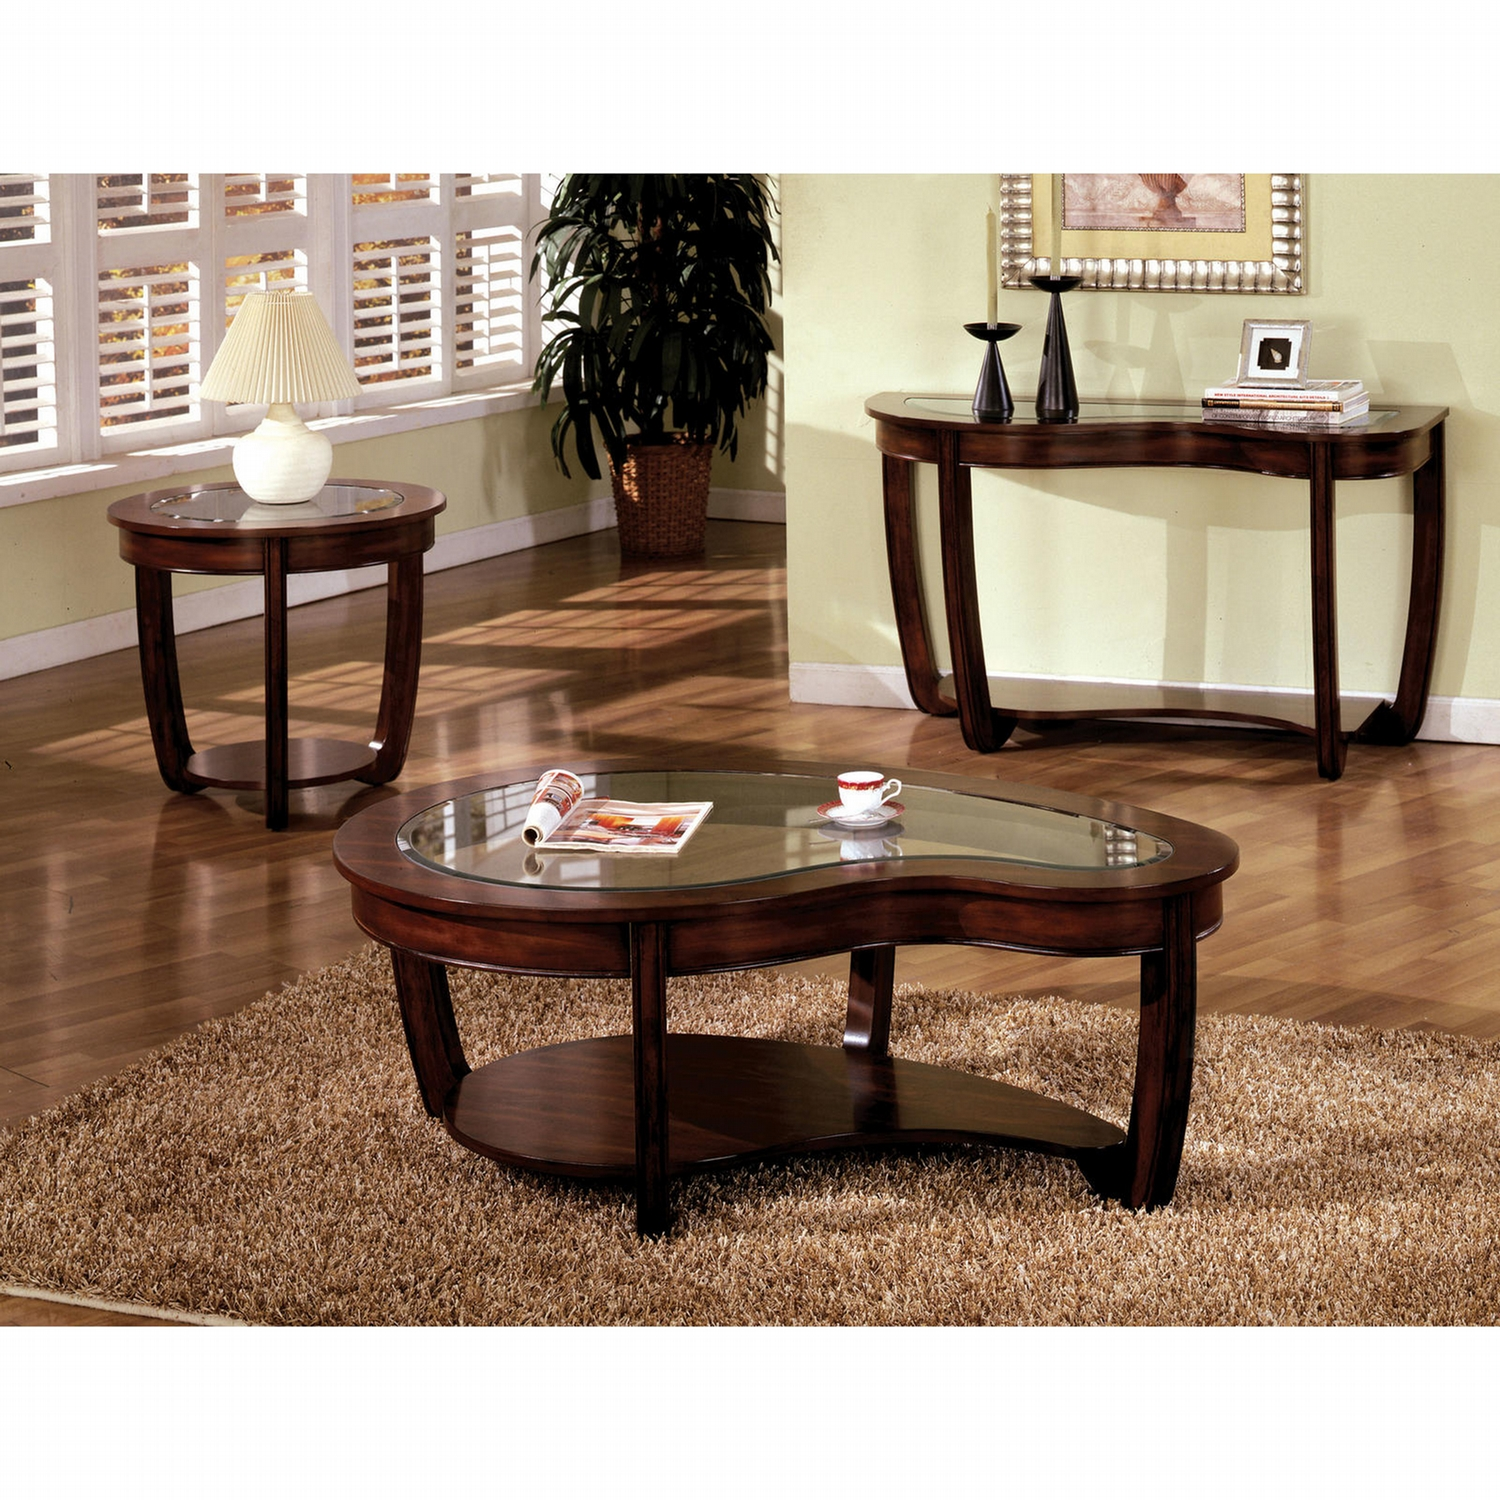 furniture america dark cherry coleen piece accent table set get wood backyard ethan allen leather sofa ikea slim storage outdoor patio covers dale tiffany lamps mini crystal lamp